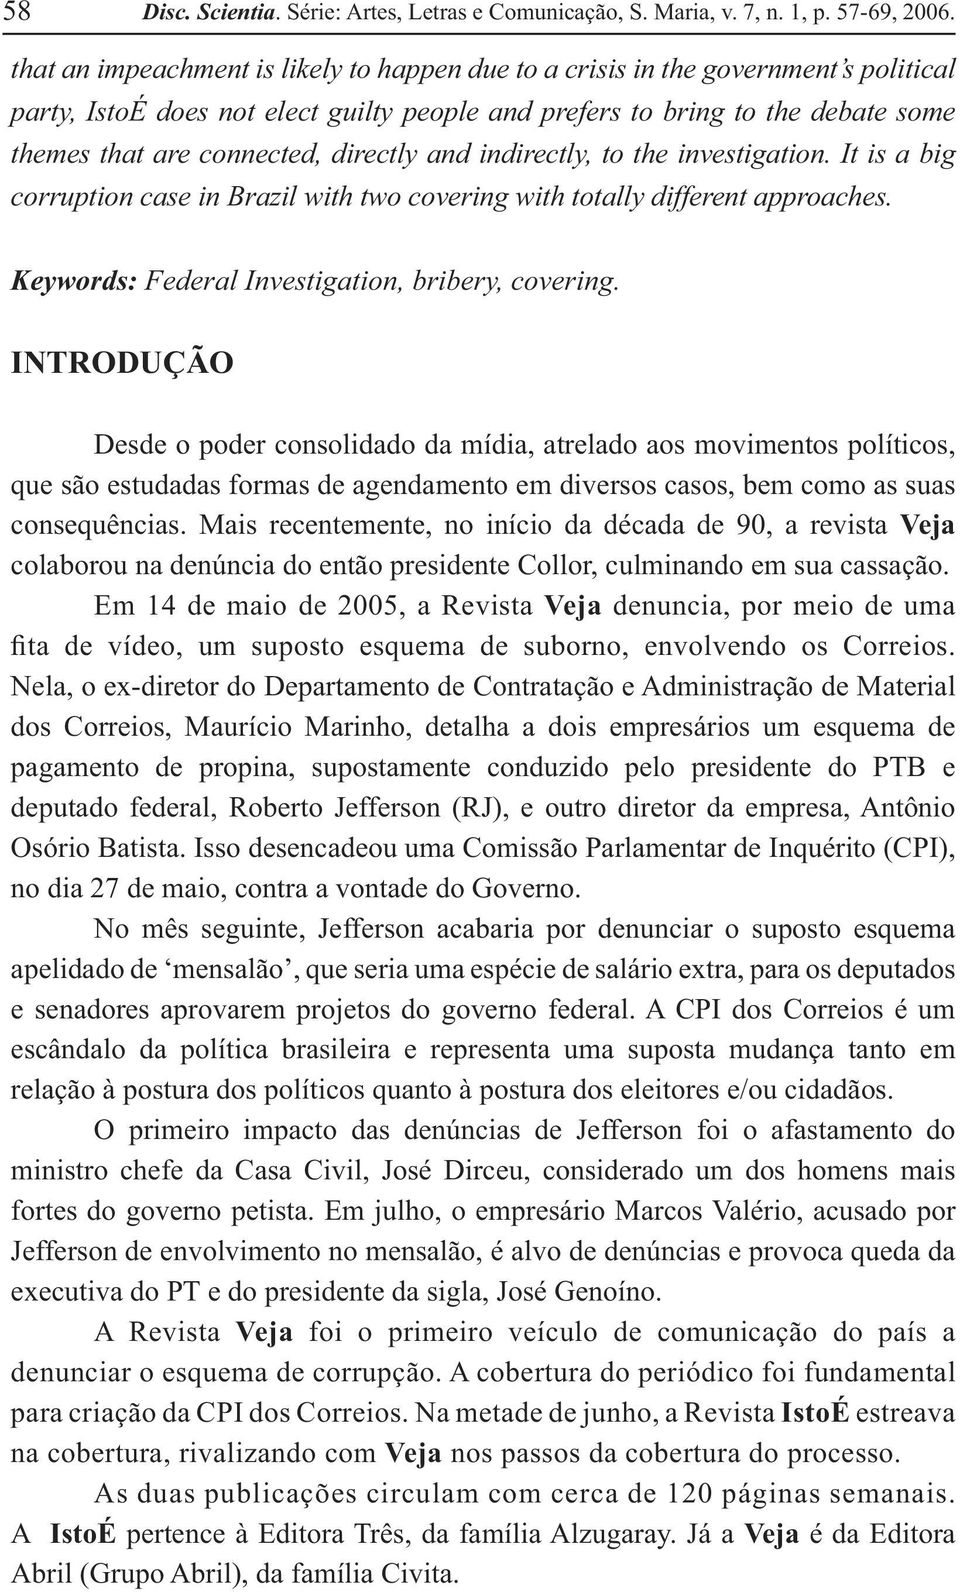 directly and indirectly, to the investigation. It is a big corruption case in Brazil with two covering with totally different approaches. Keywords: Federal Investigation, bribery, covering.